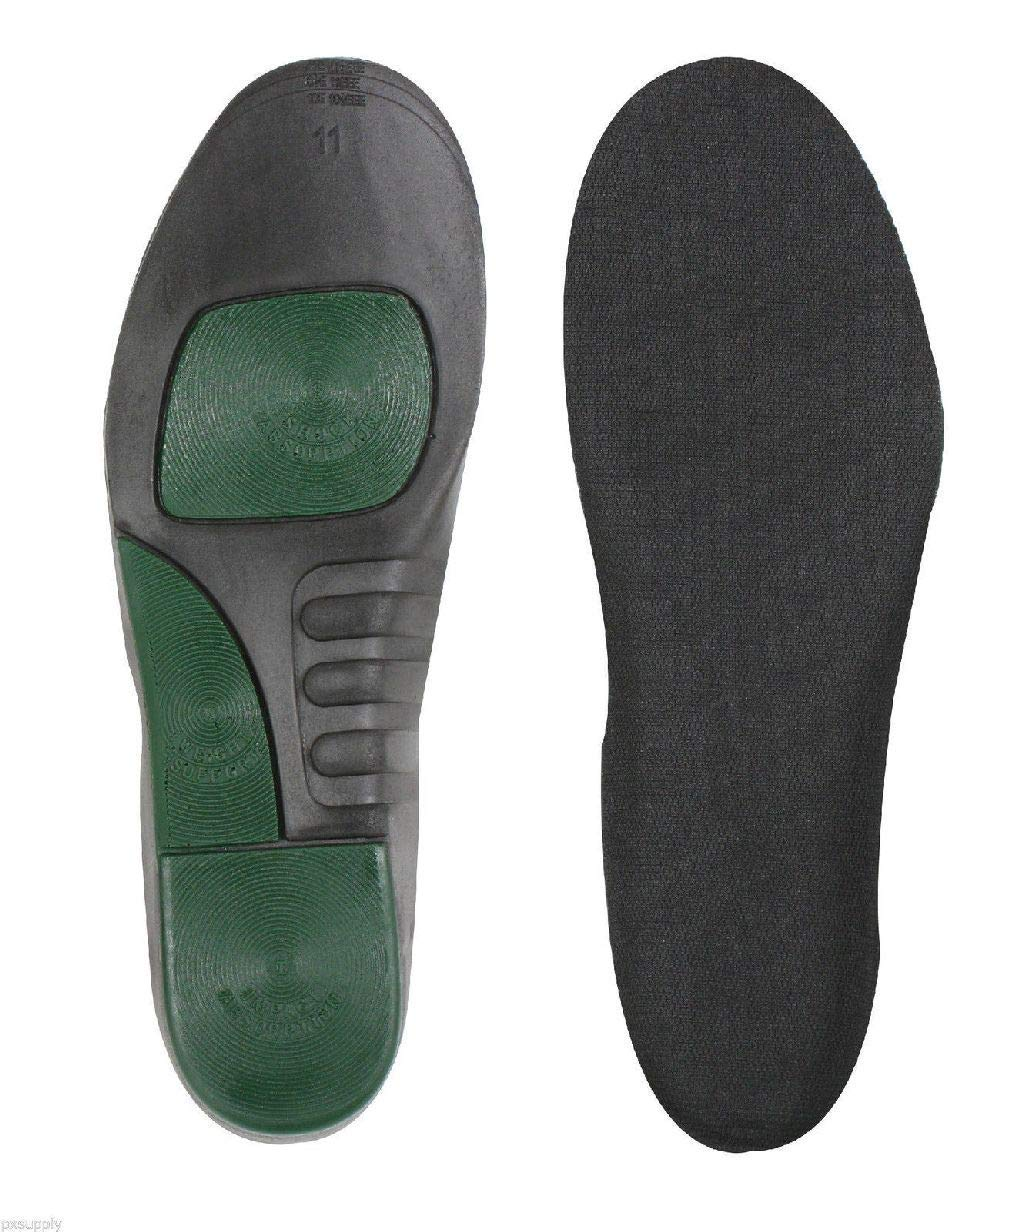 f812d592ab Get Quotations · Tactical Insoles w/Arch Support Comfort Boots Shoes Inserts  Uniform